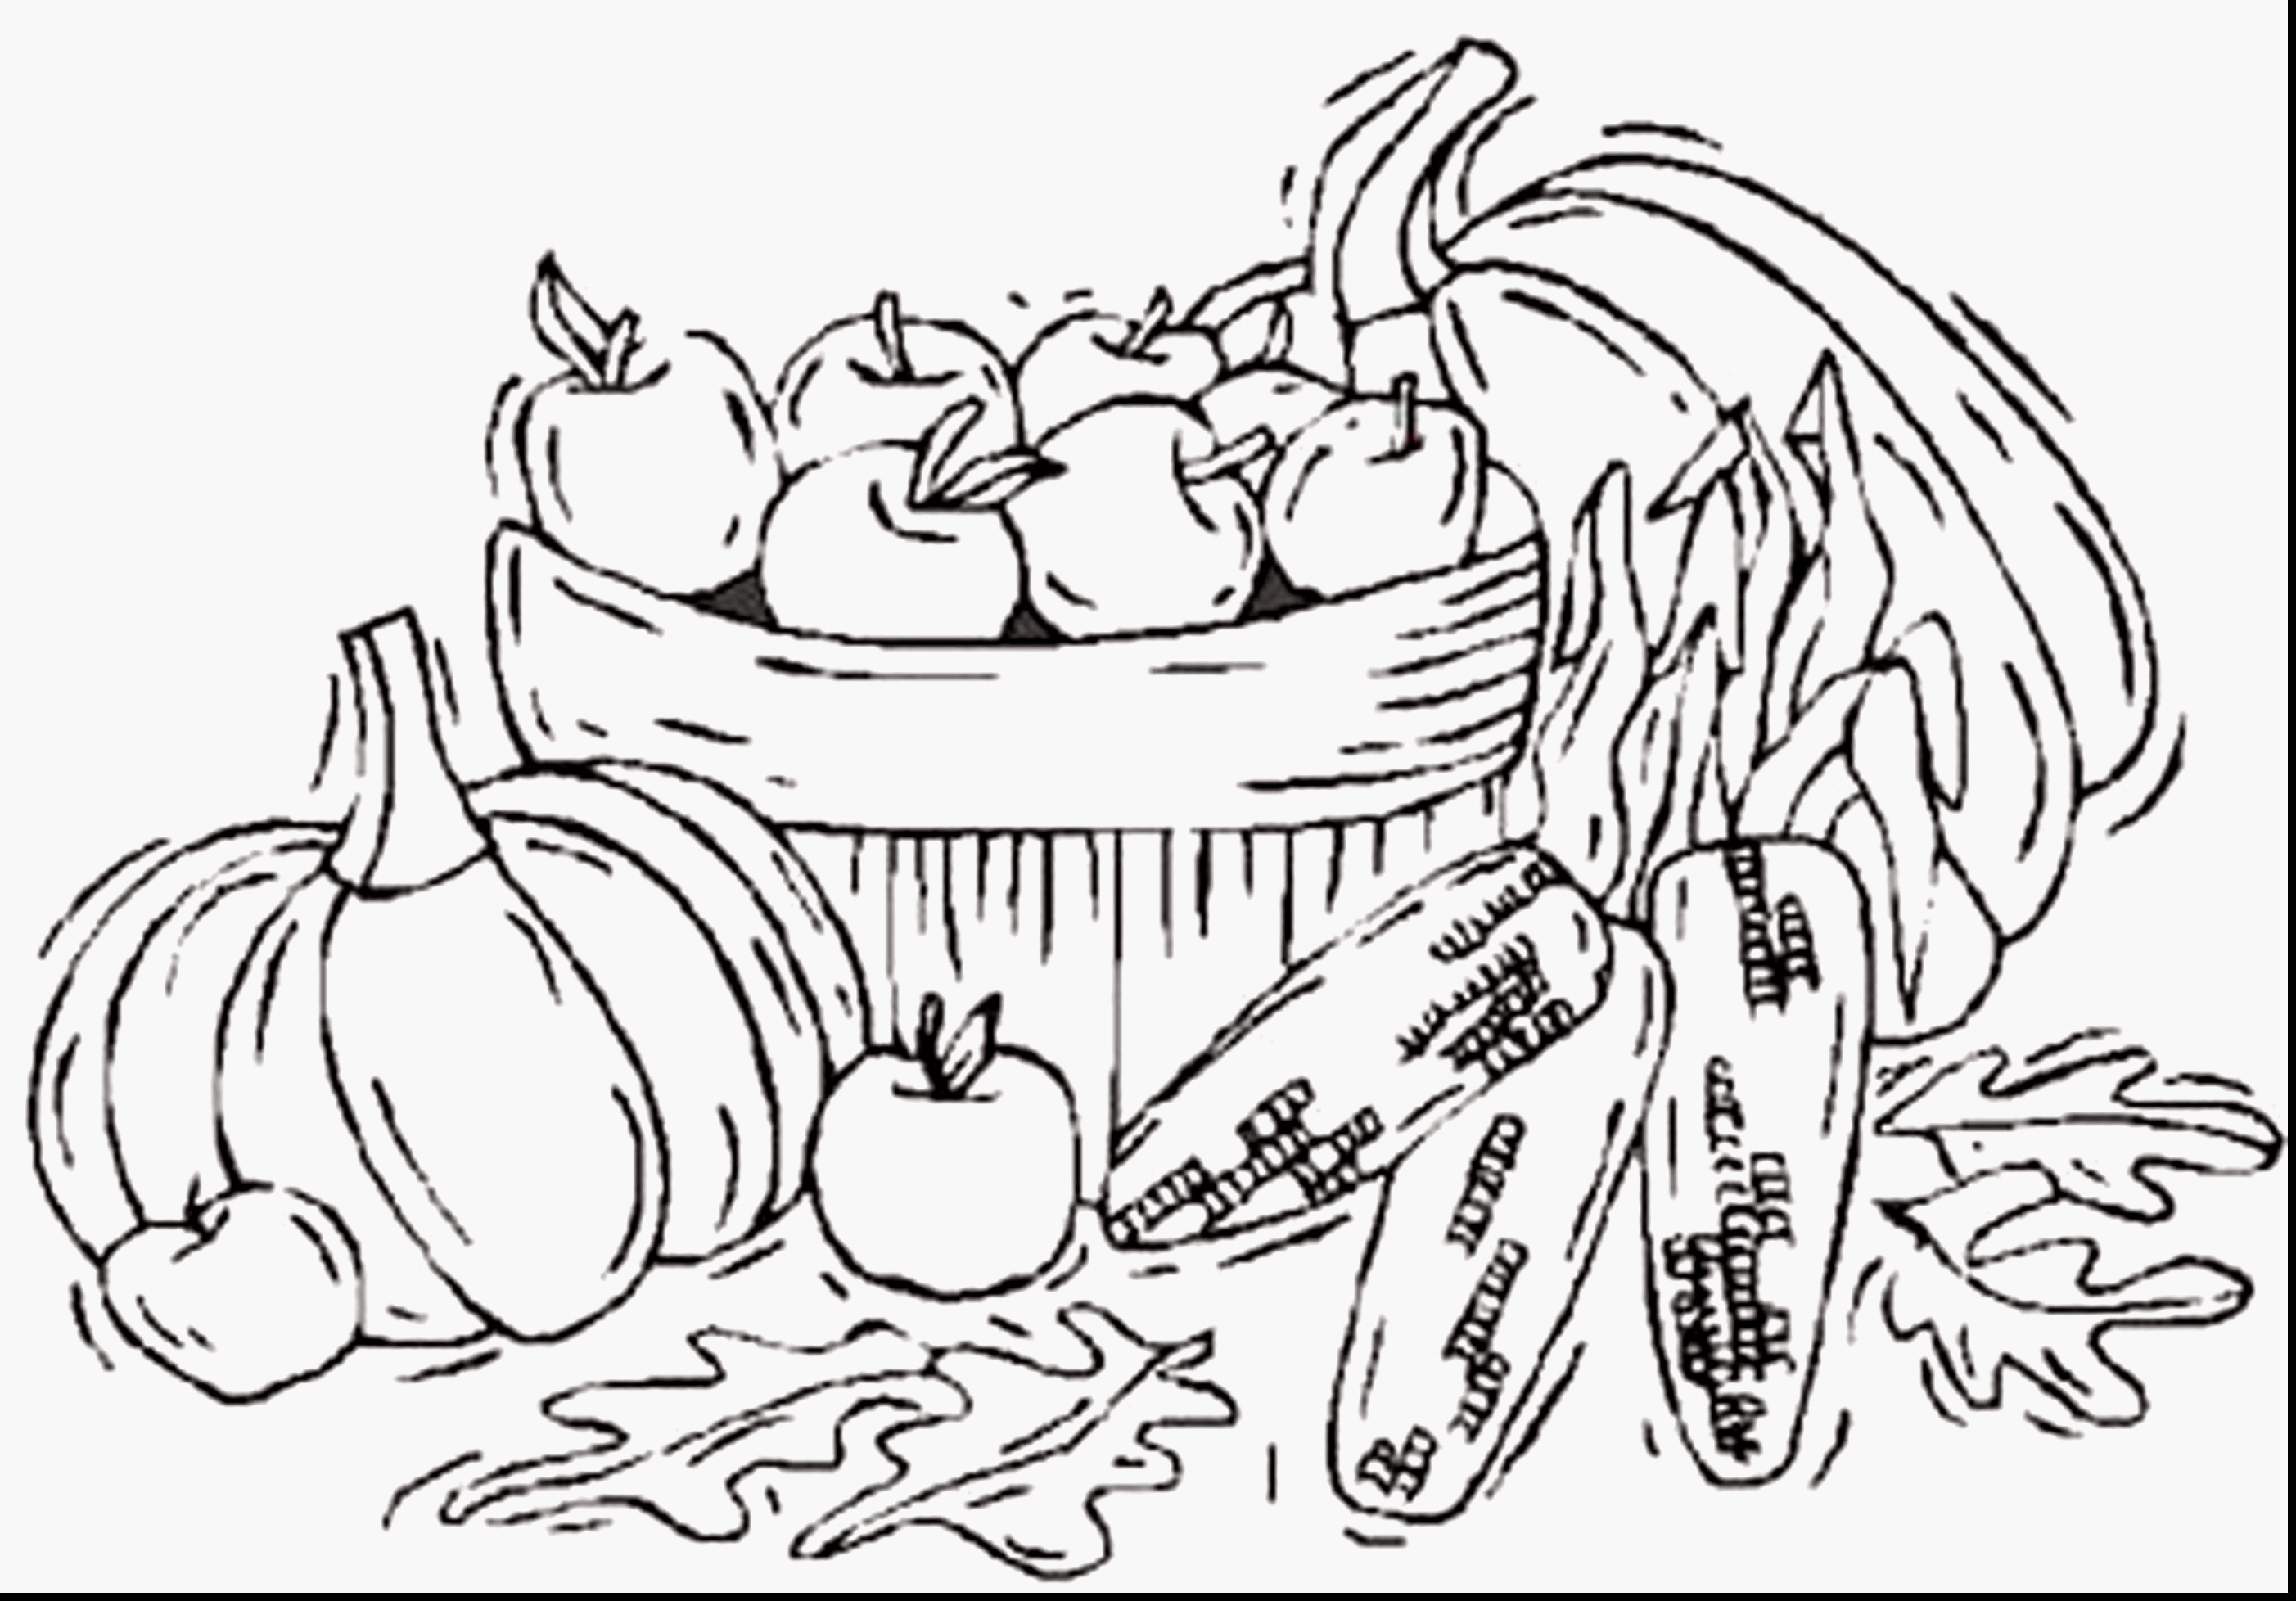 Winter Scenes With Cute Animals Coloring Page - Free Coloring Pages Online | 1956x2805